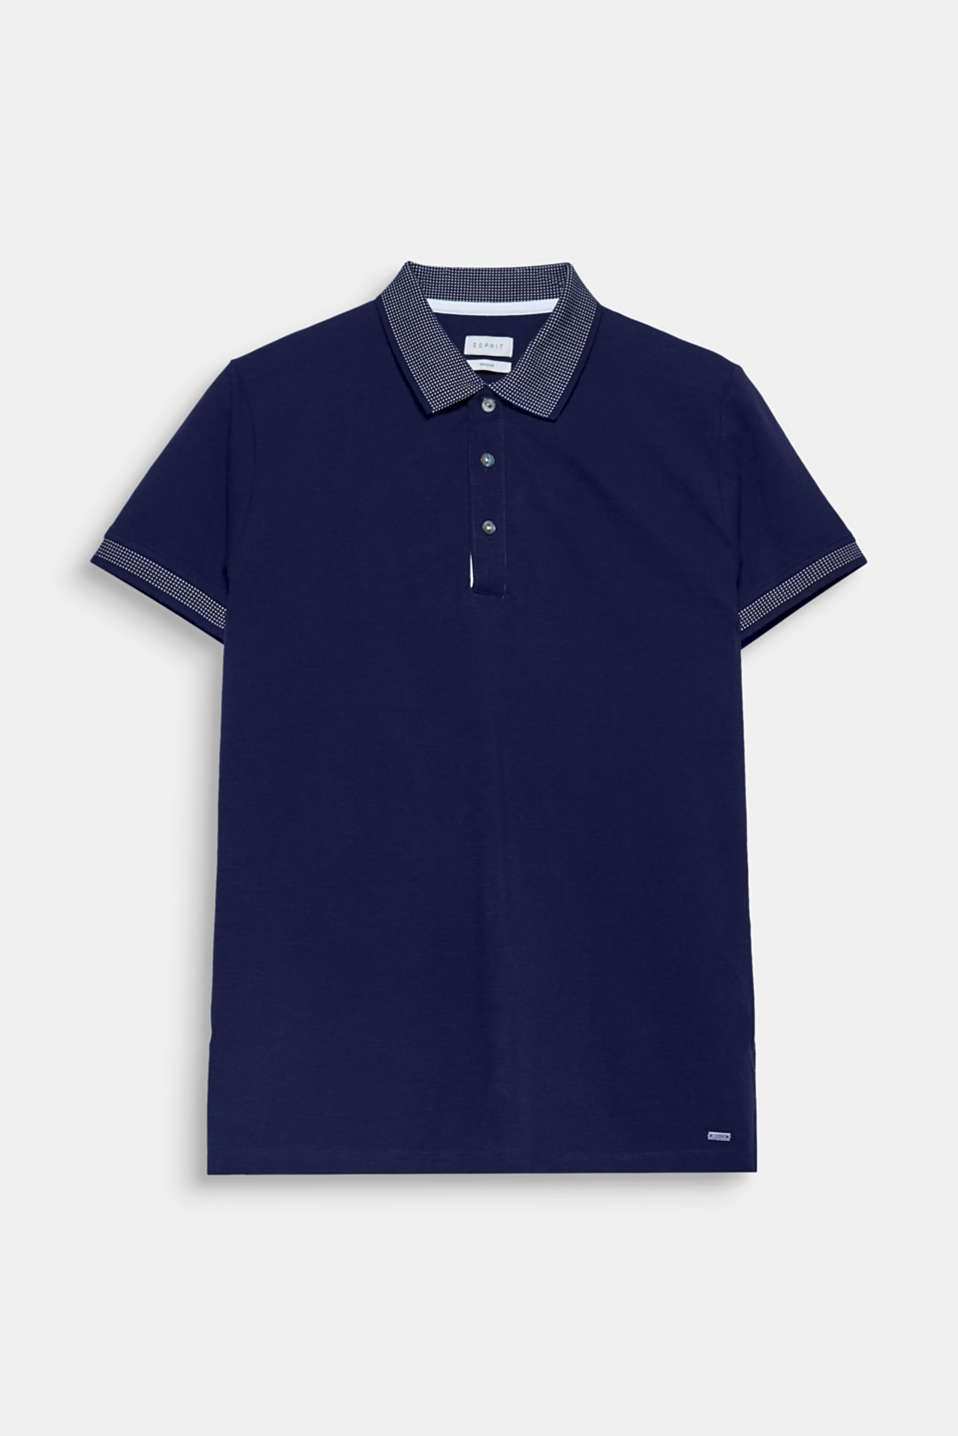 A timeless classic with a modern twist: polo shirt in classic piqué fabric with an accentuated ribbed collar.